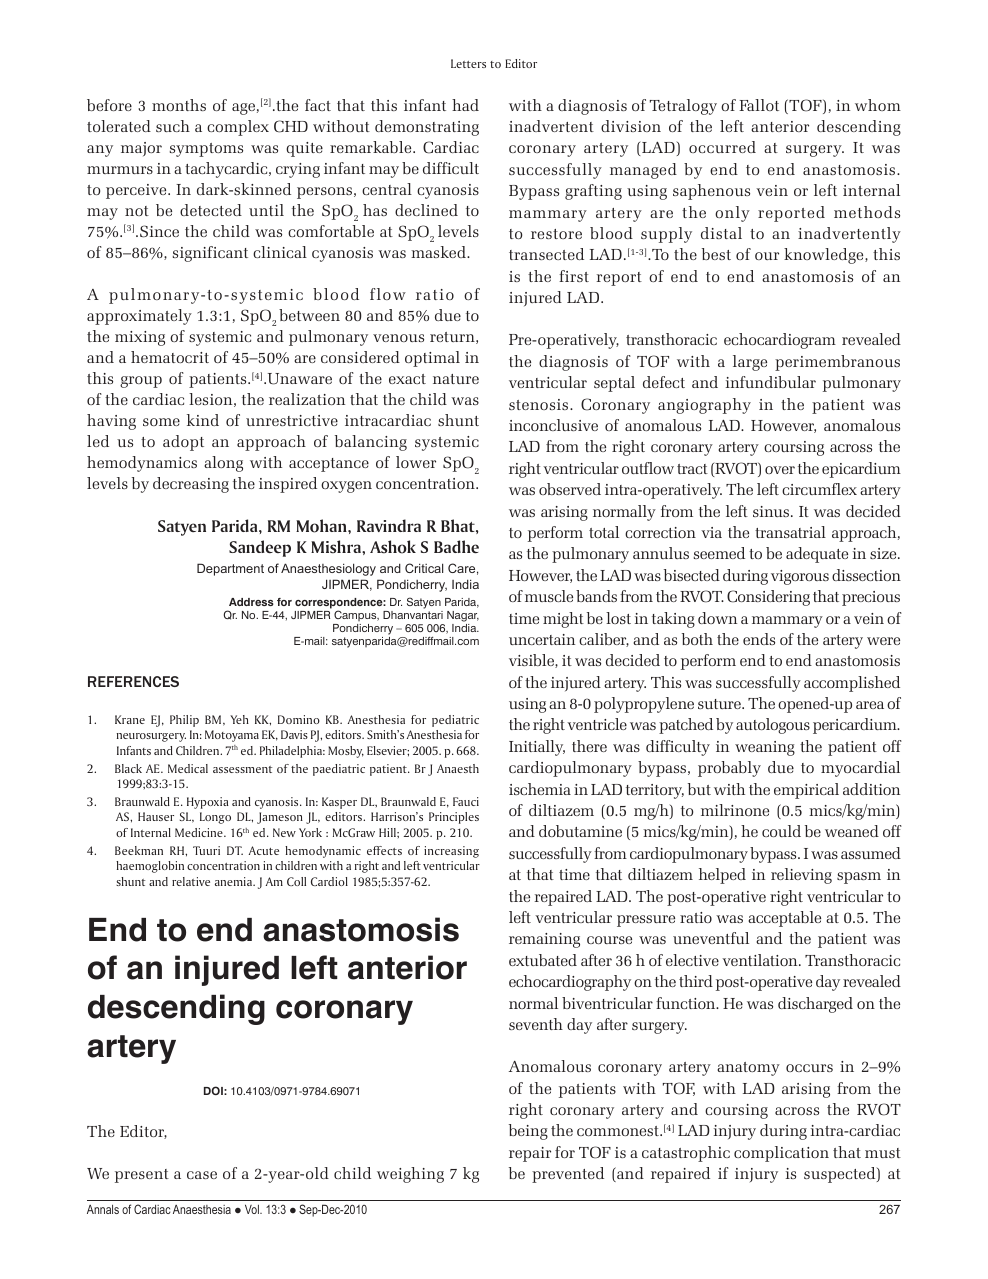 End to end anastomosis of an injured left anterior